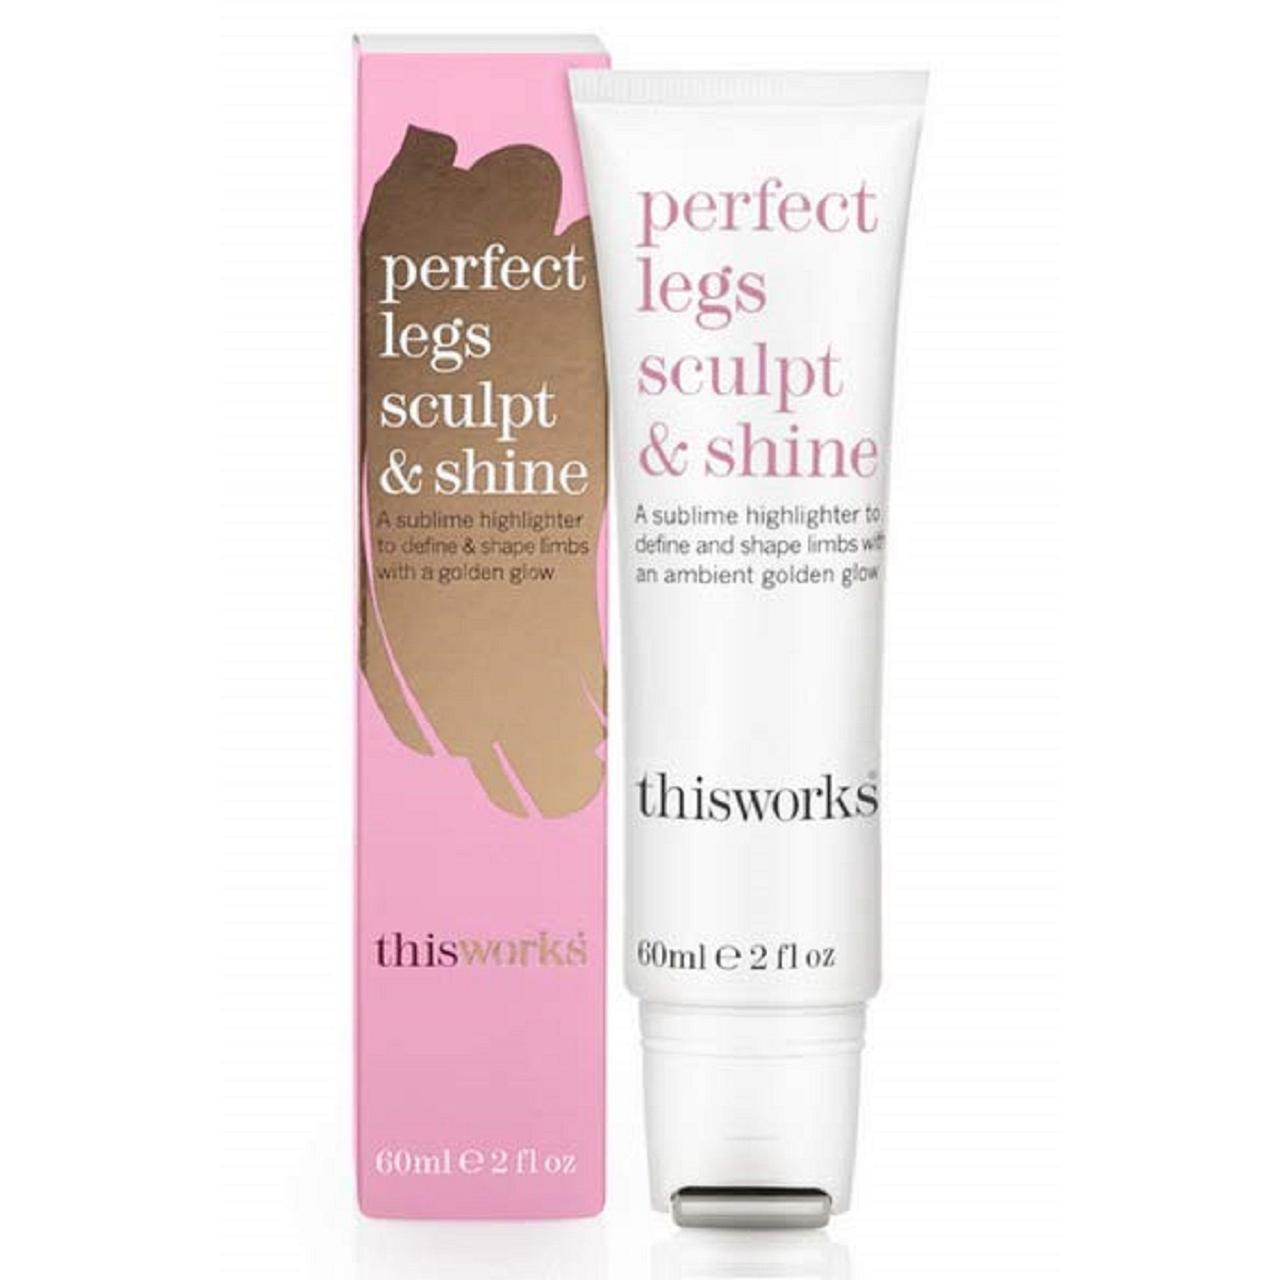 An image of This Works perfect legs sculpt & shine 60ml